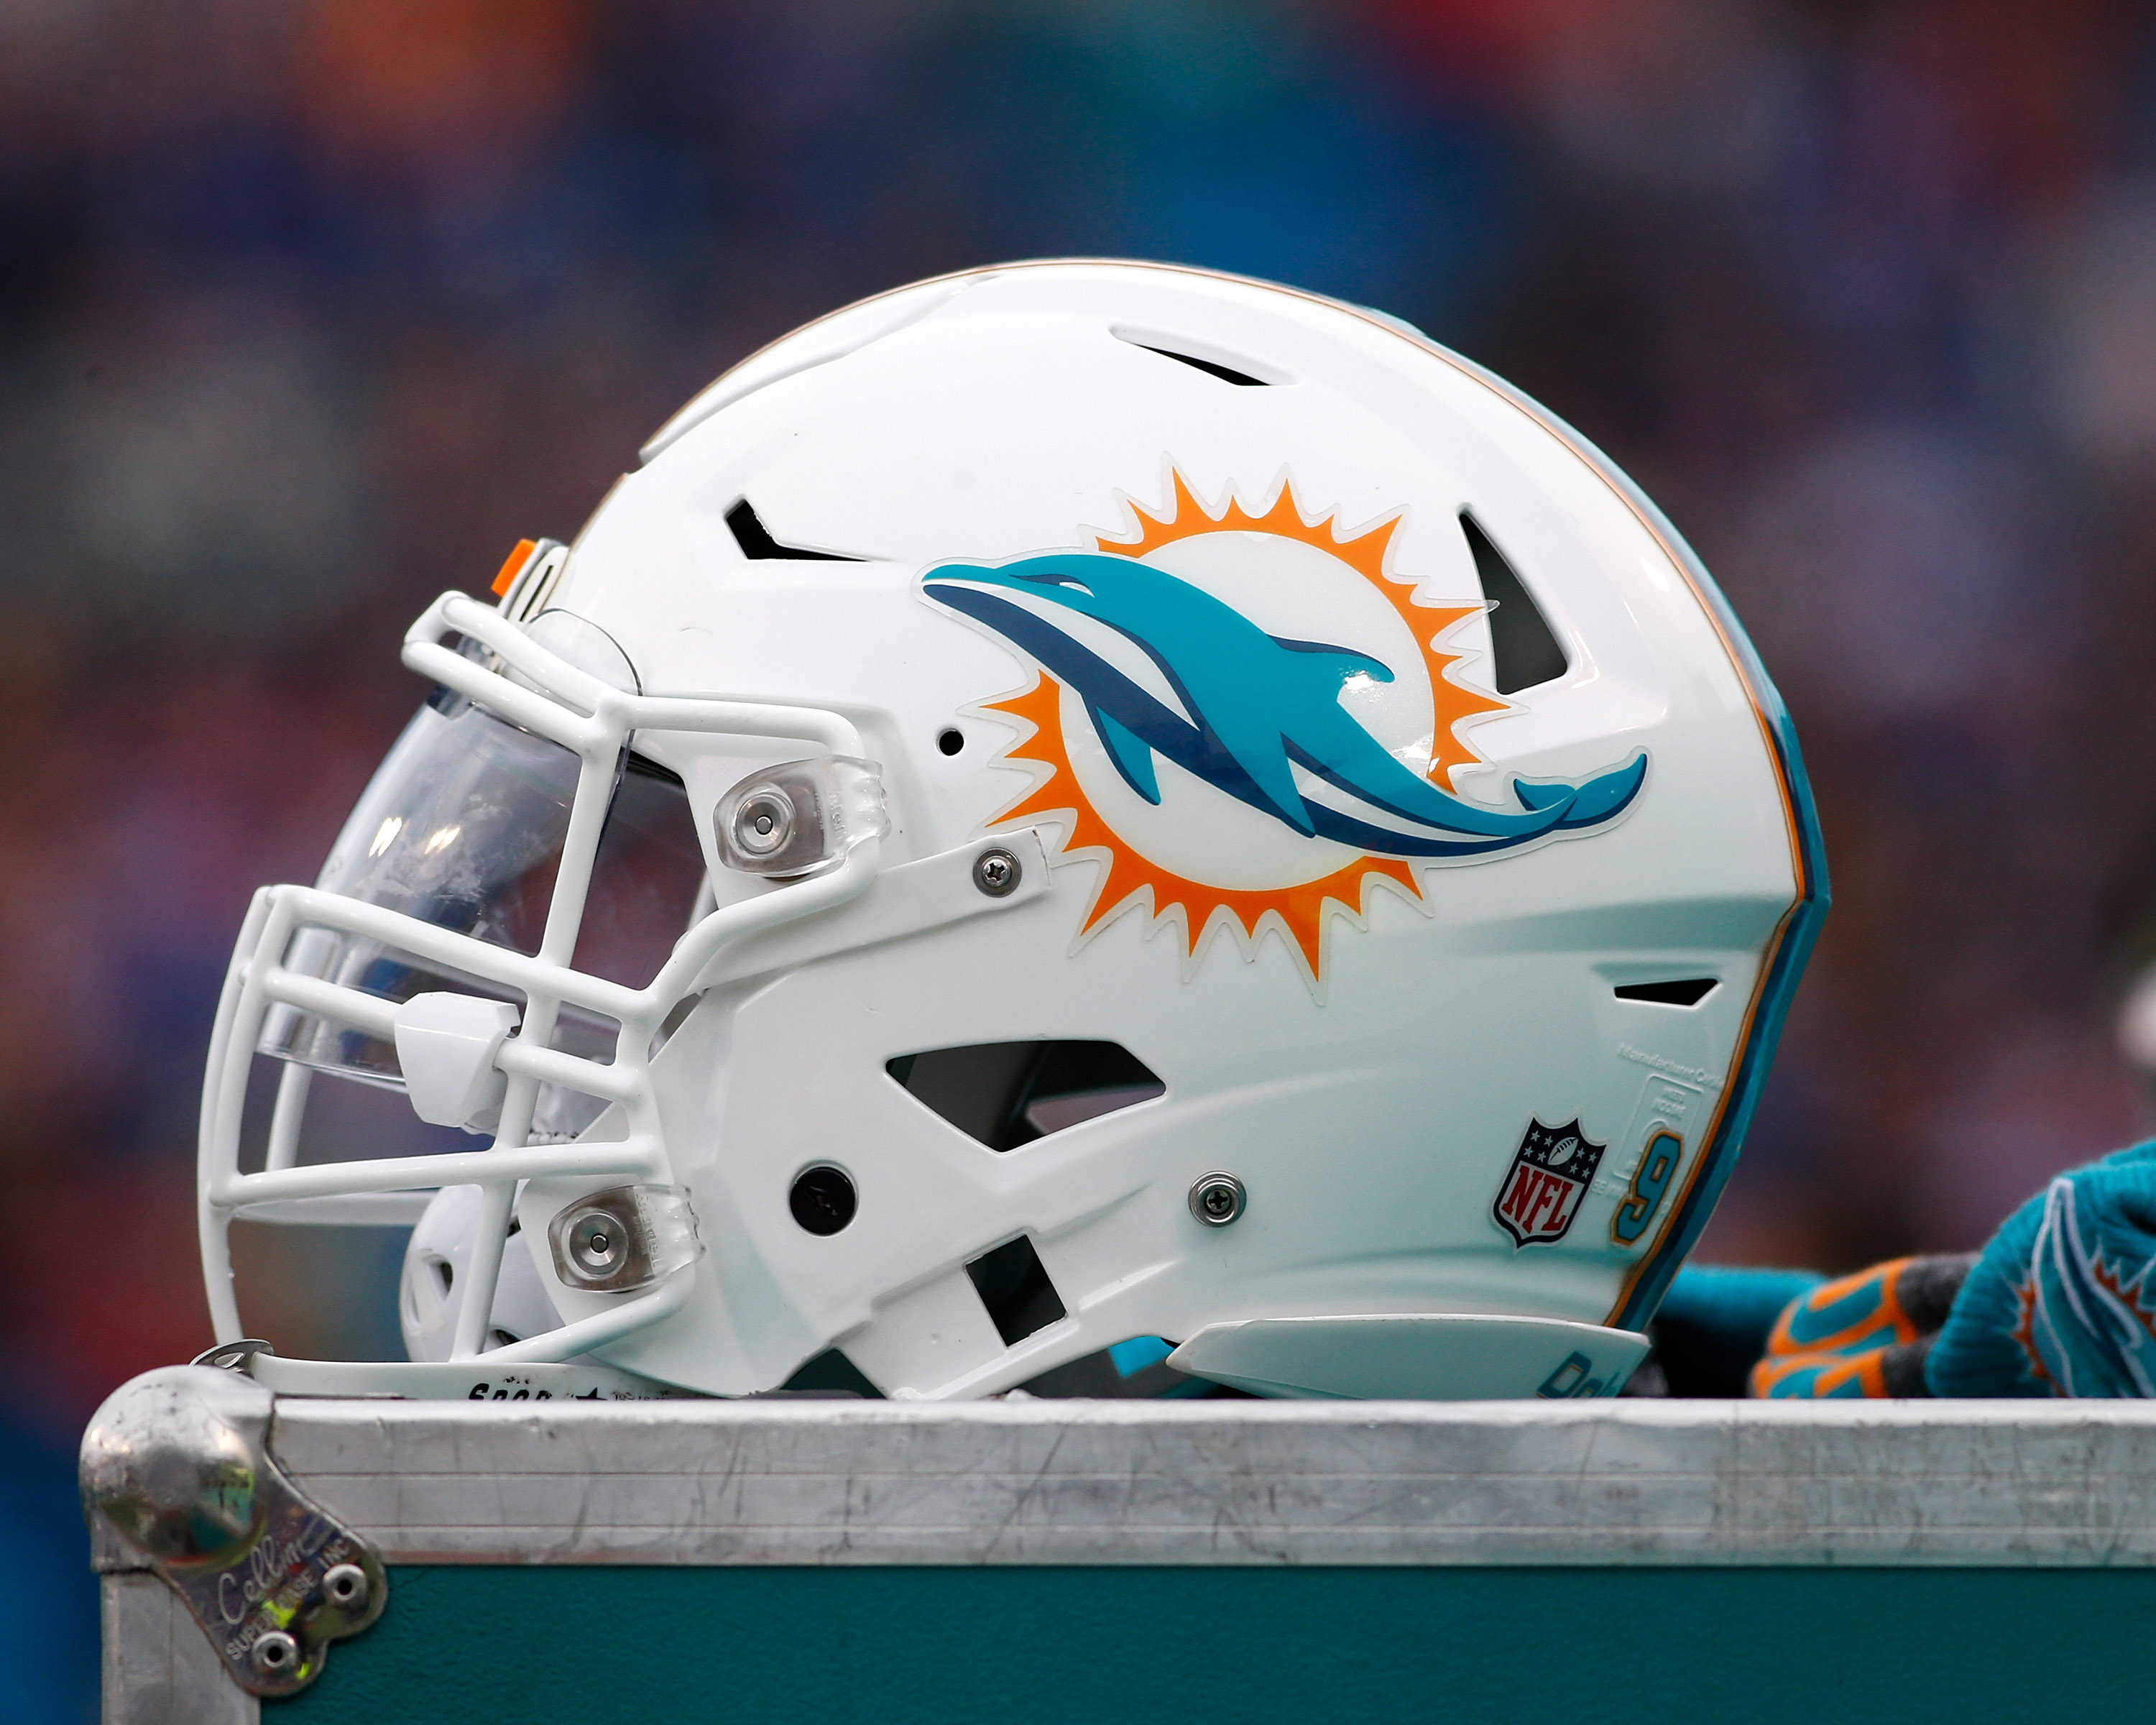 Dec 24, 2016; Orchard Park, NY, USA; A general view of a Miami Dolphins helmet before the game against the Buffalo Bills at New Era Field. Mandatory Credit: Kevin Hoffman-USA TODAY Sports